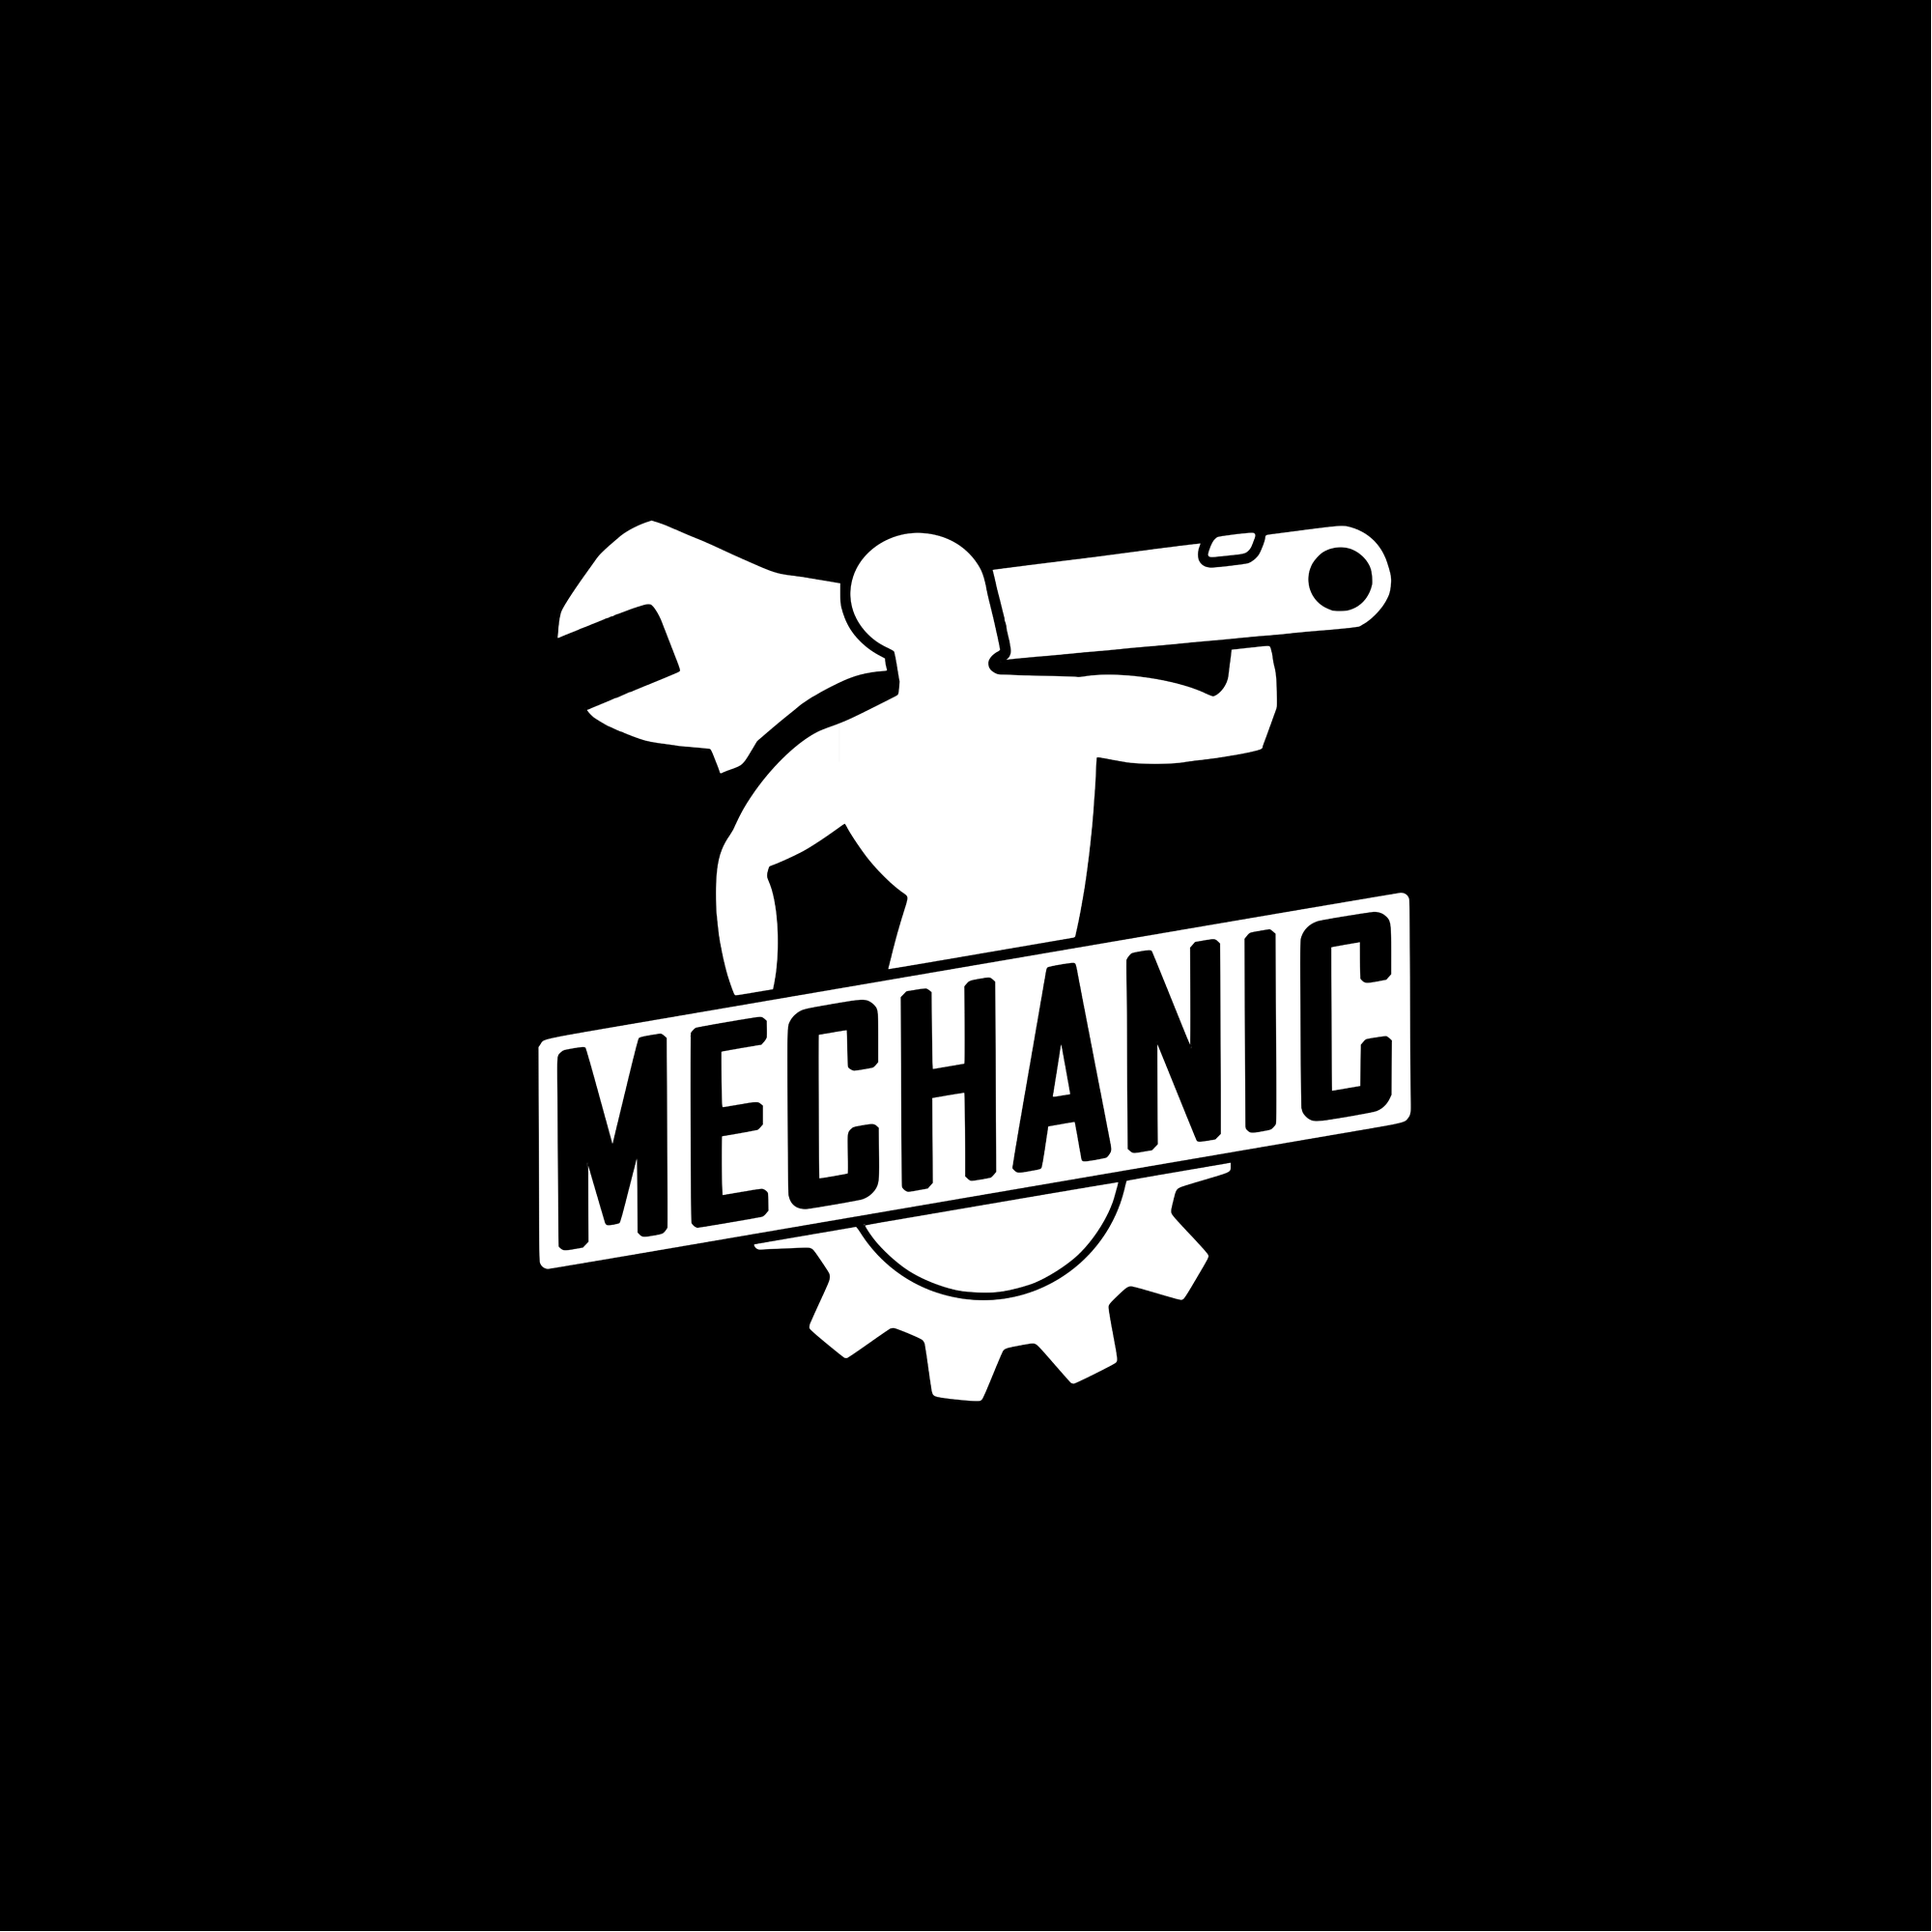 Mechanic logo design